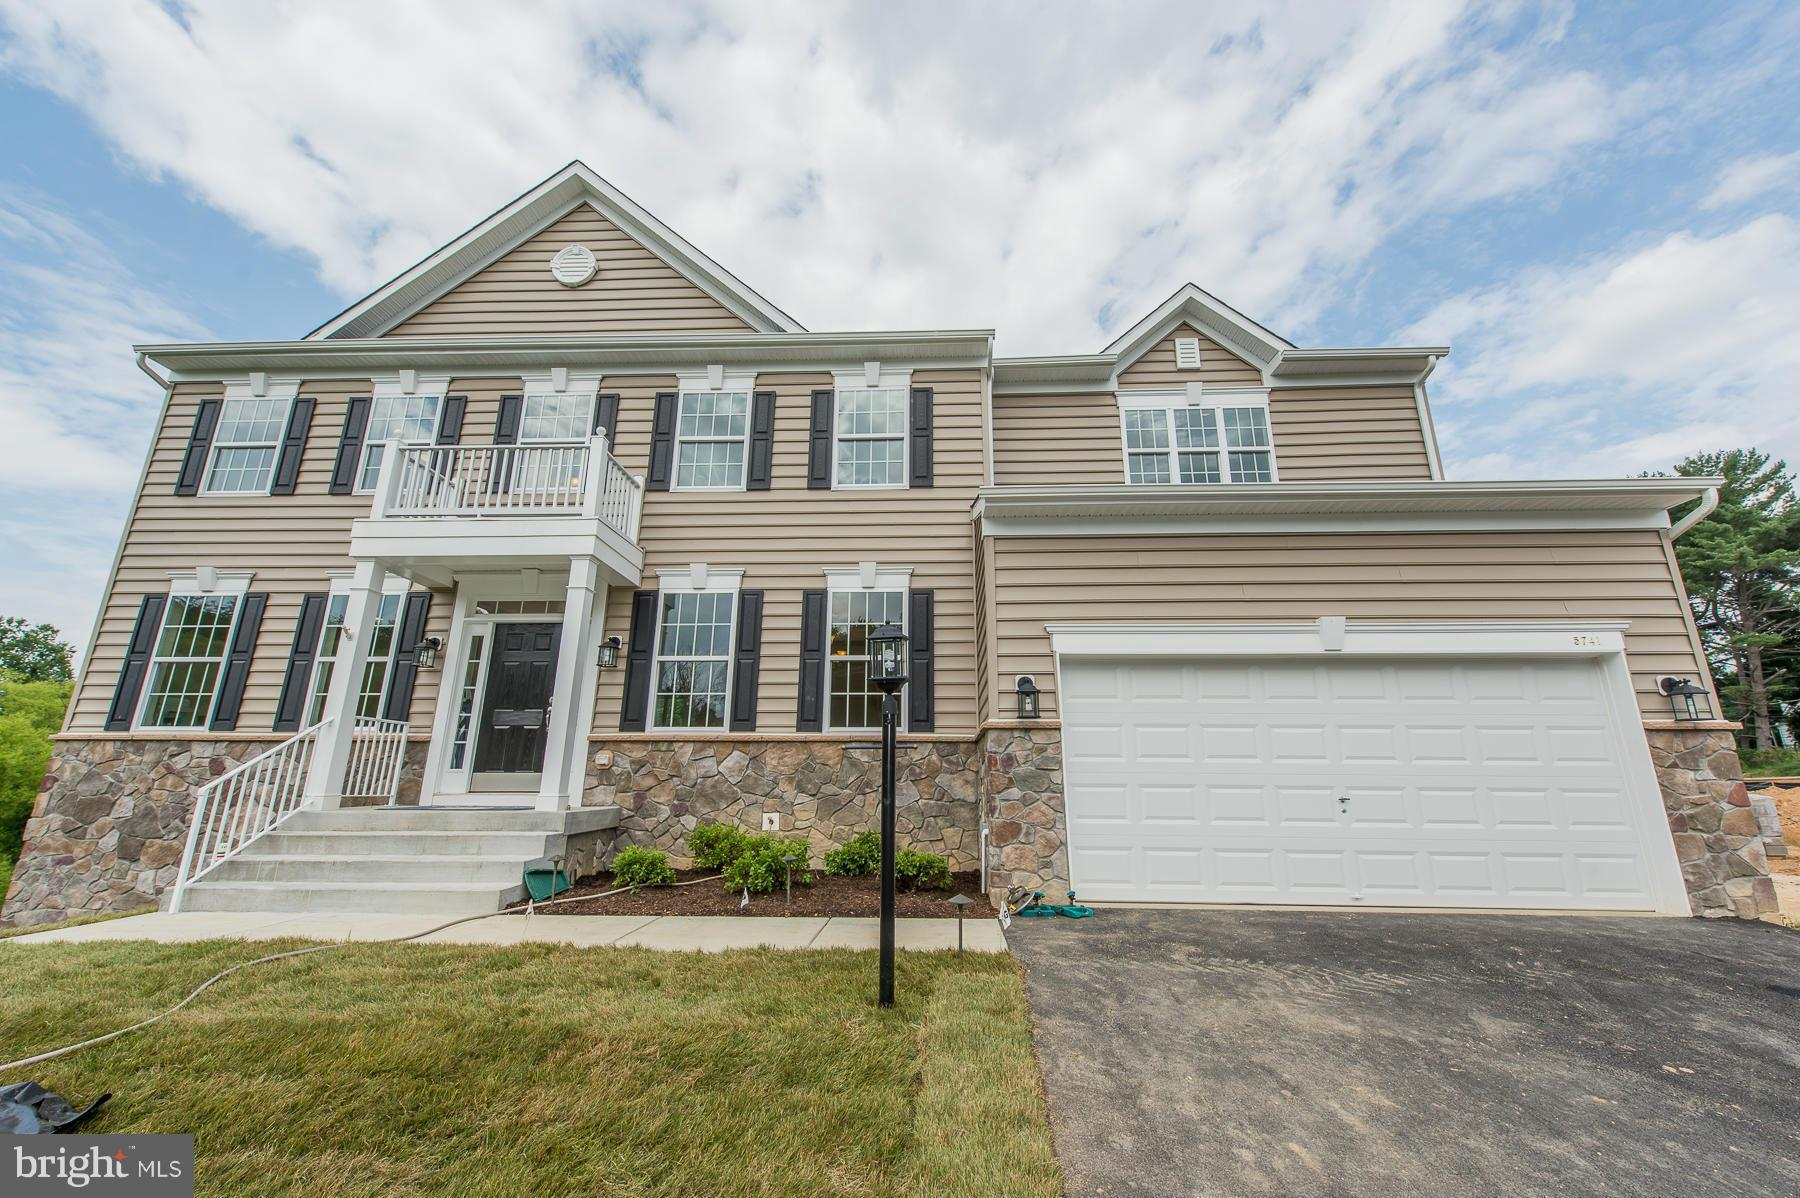 2 AUSTIN WAY, ELKRIDGE, MD 21075